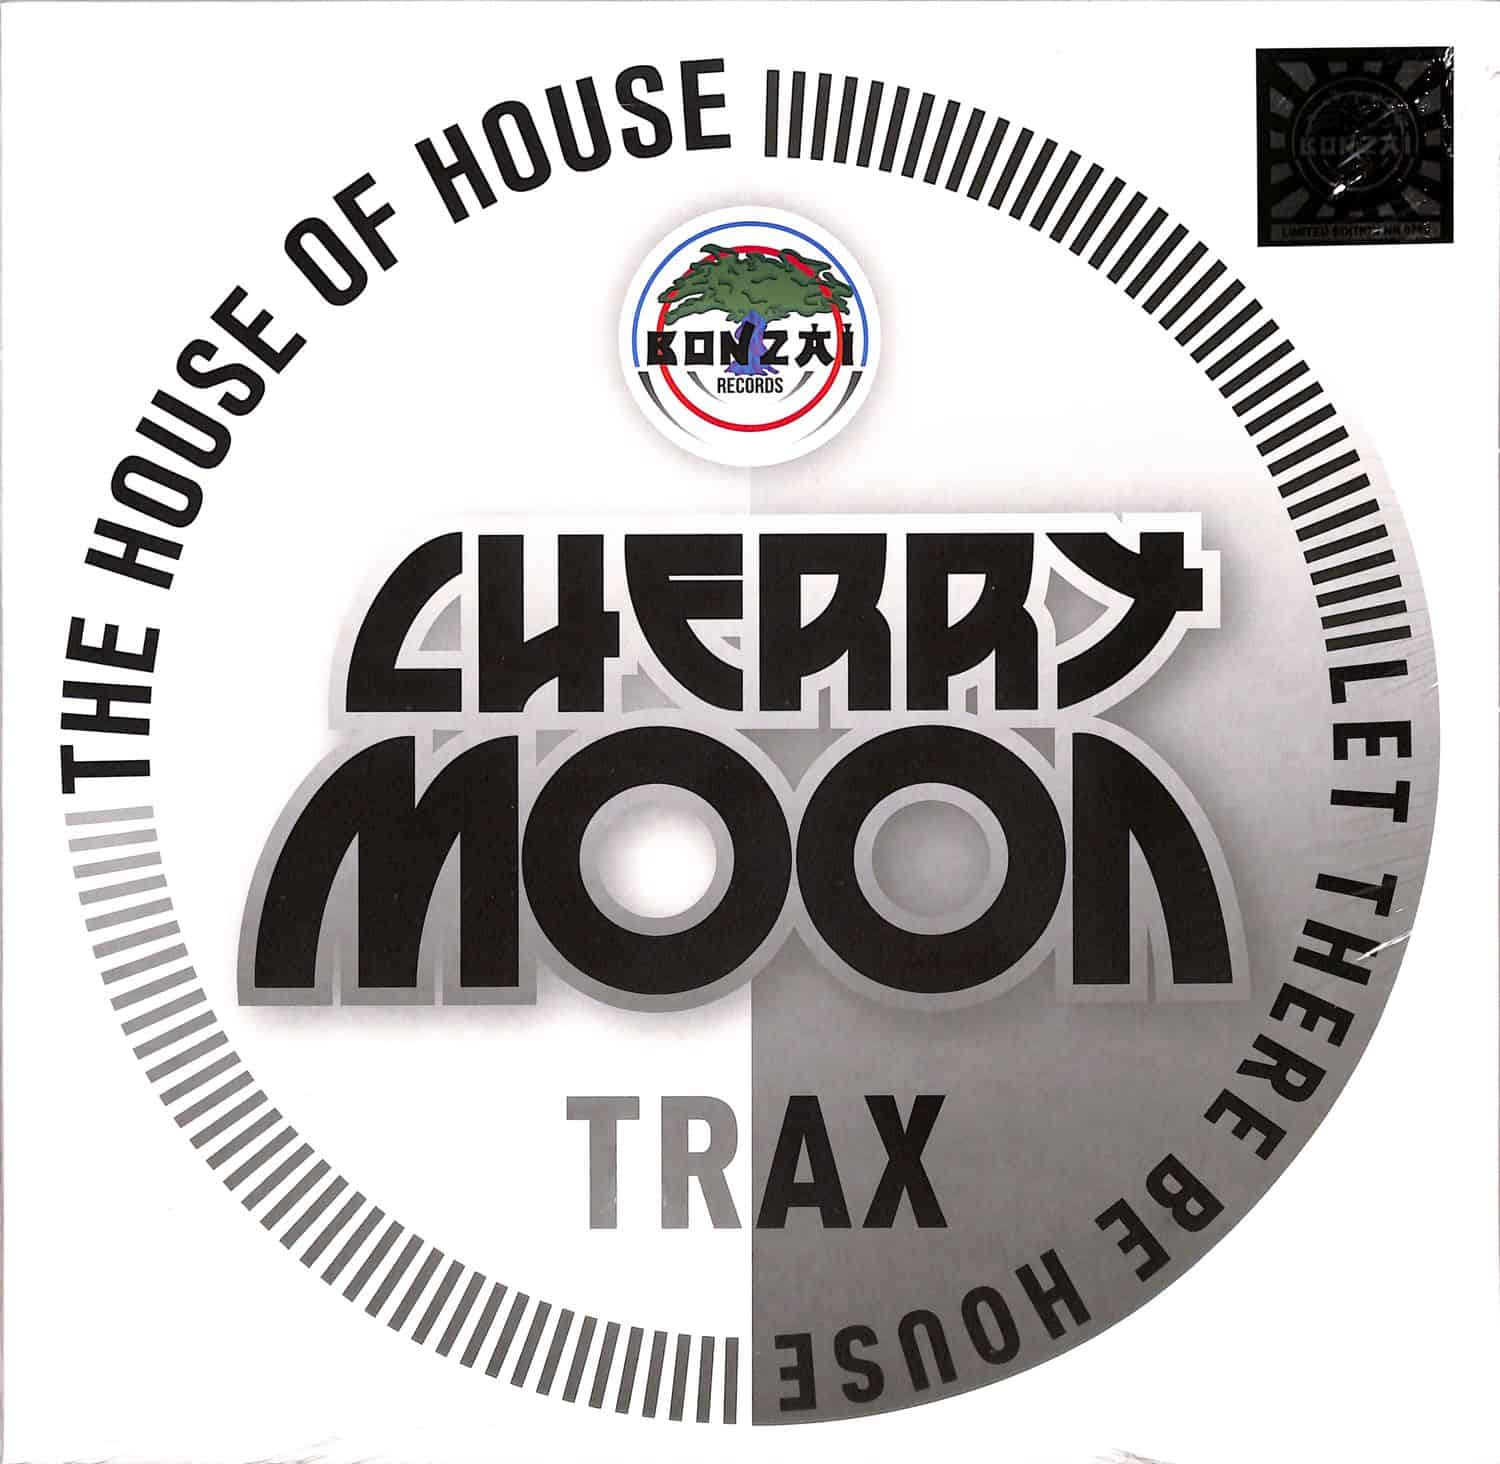 Cherry Moon Trax - THE HOUSE OF HOUSE / LET THERE BE HOUSE